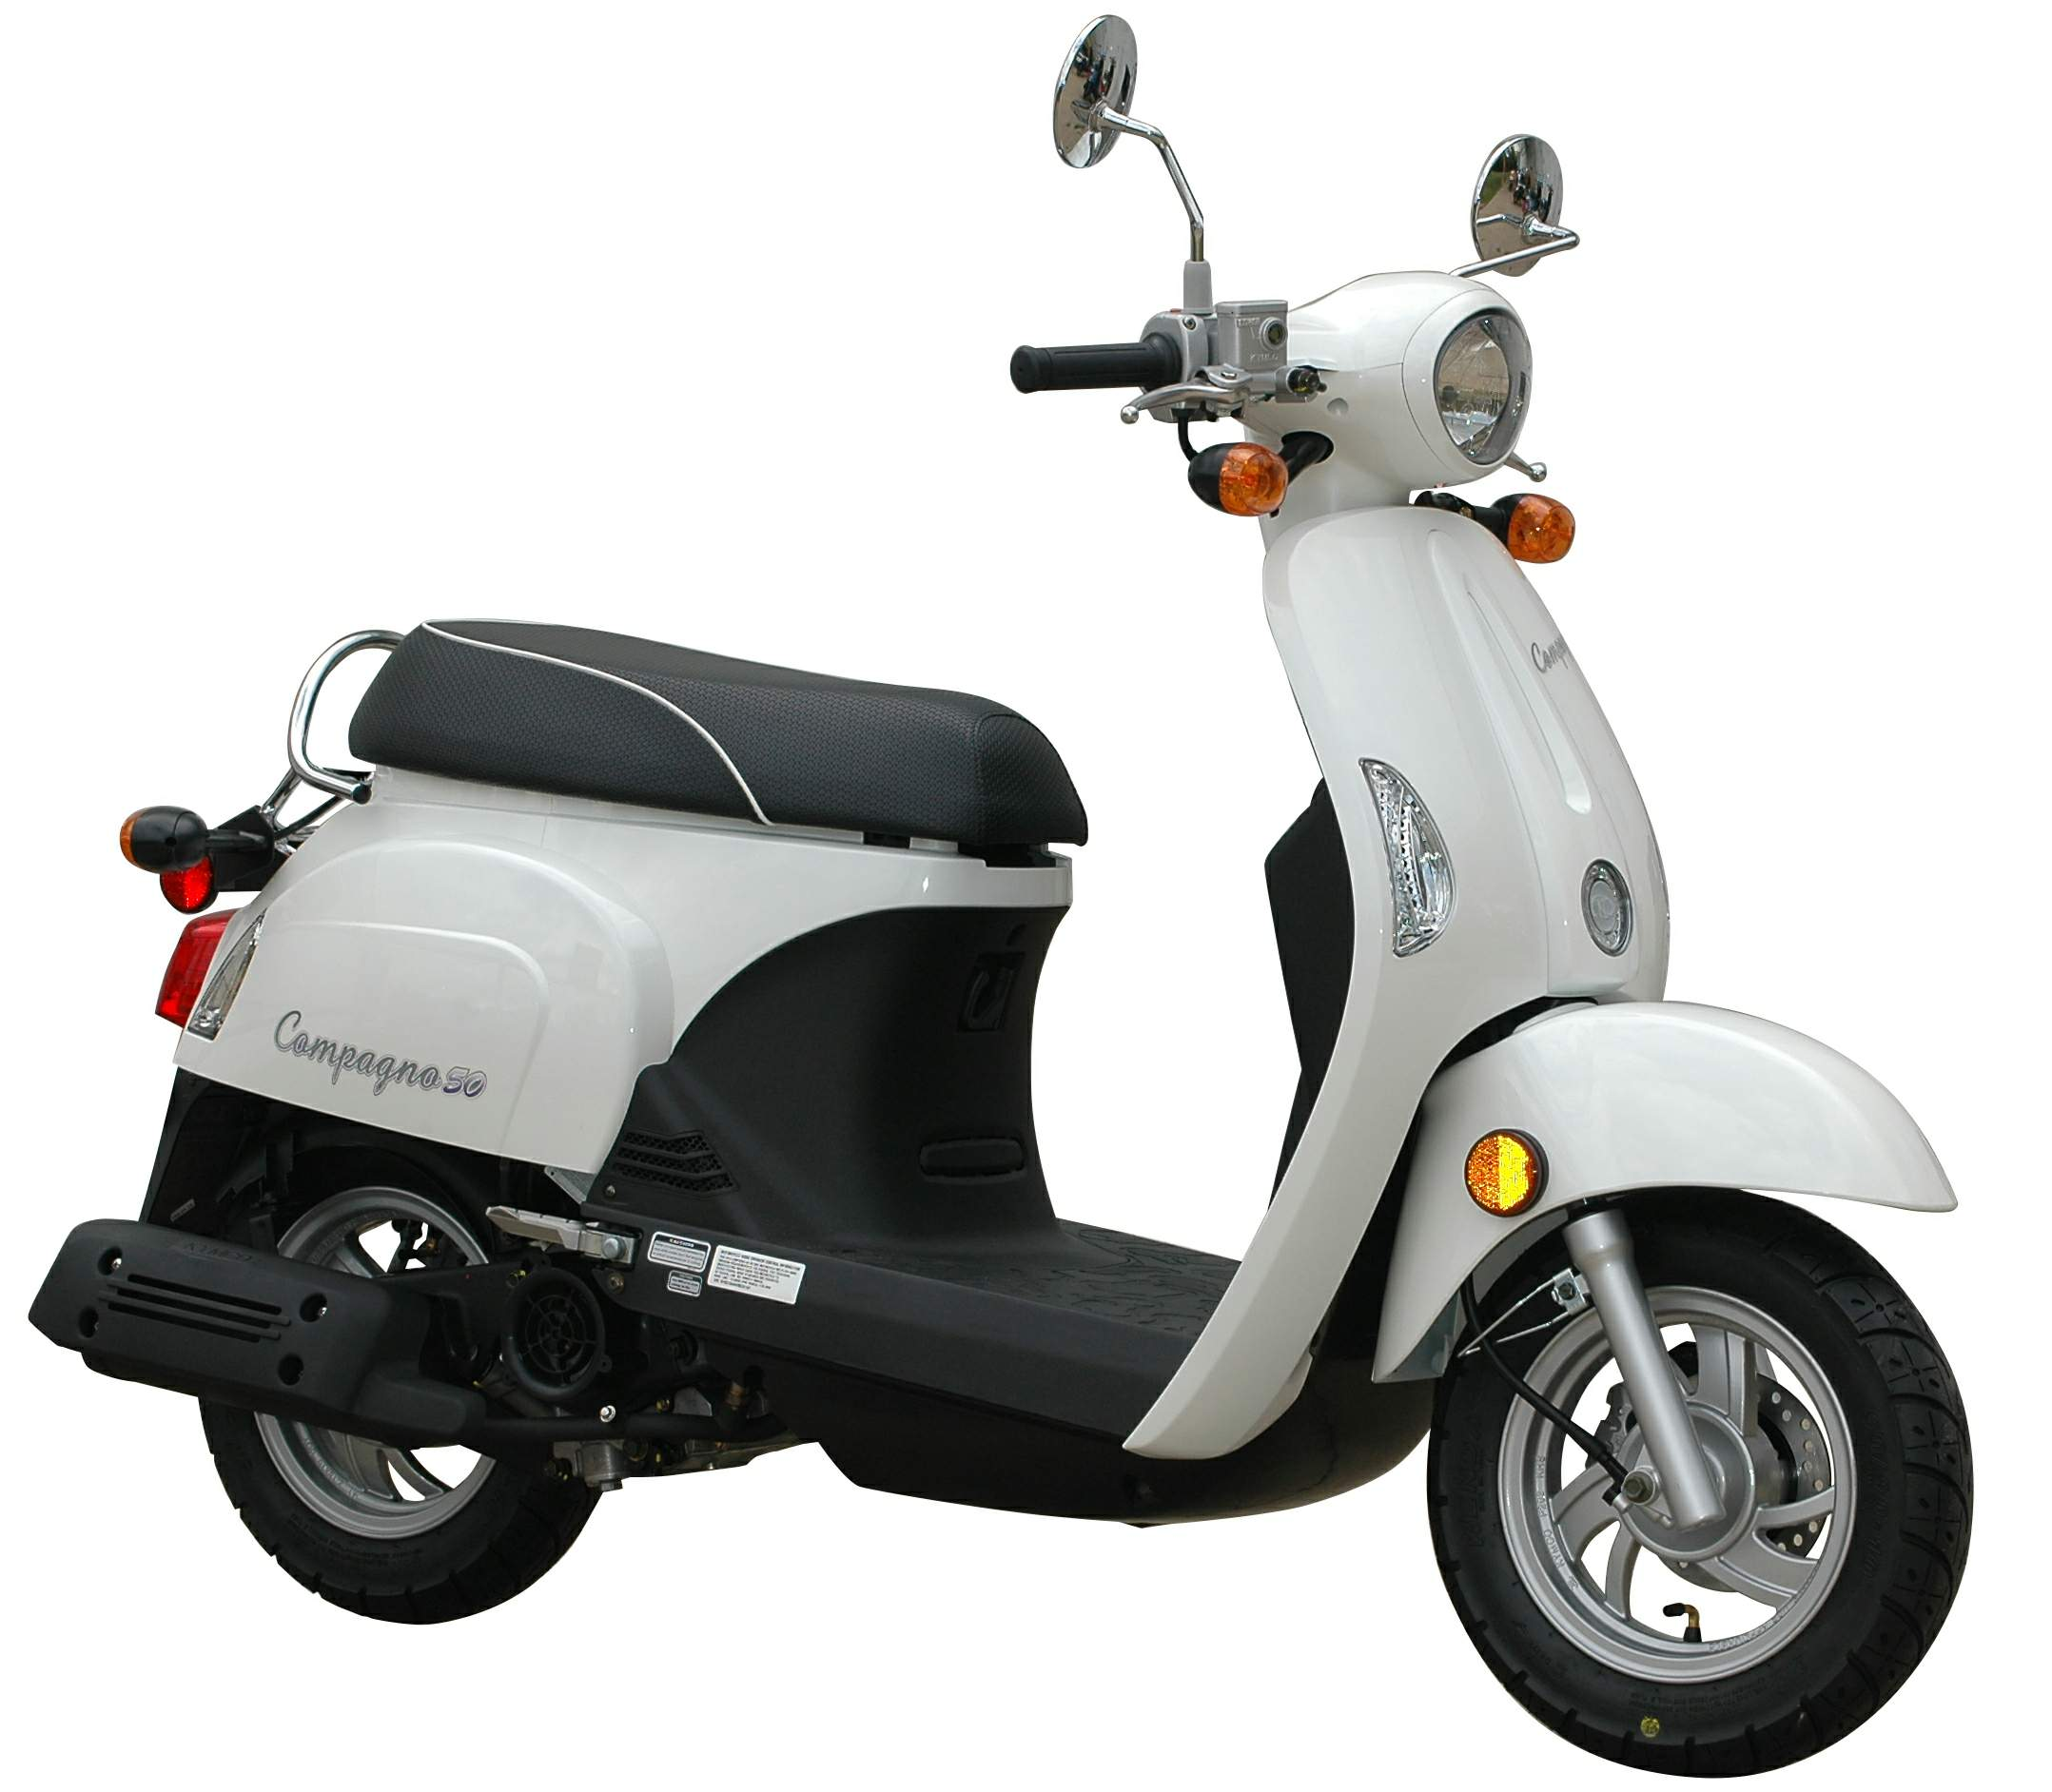 KYMCO Kymco Compagno 50i technical specifications